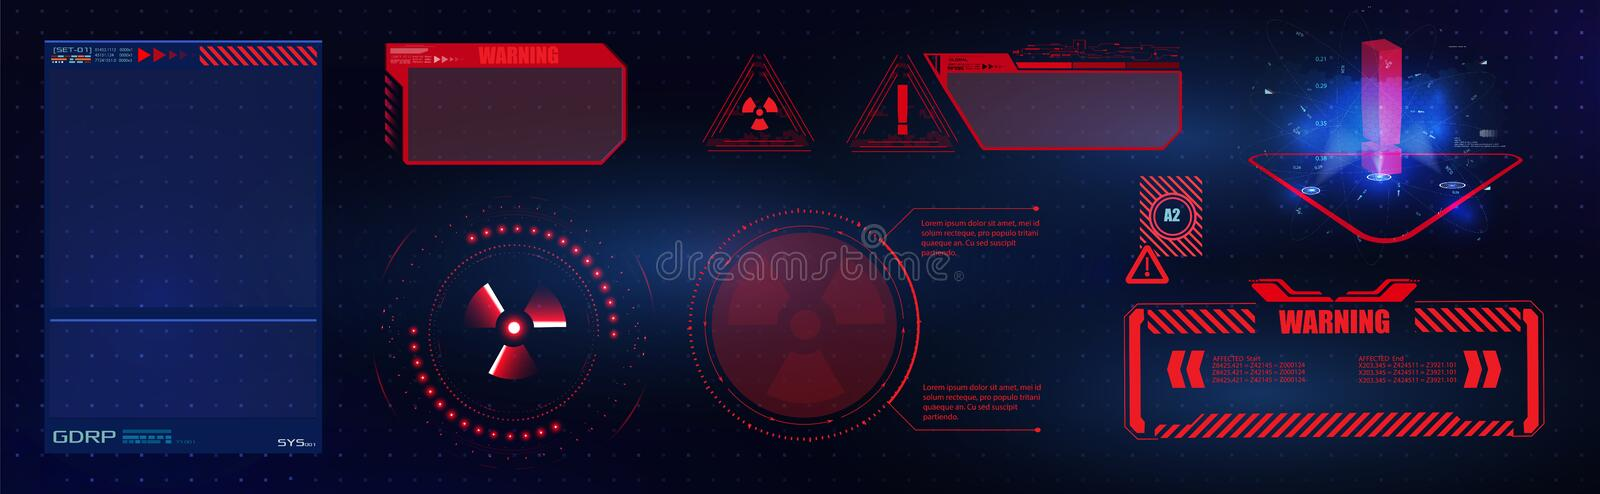 Blue  and red futuristic frame in modern HUD  style background.Abstract technology communication design innovation concept royalty free illustration